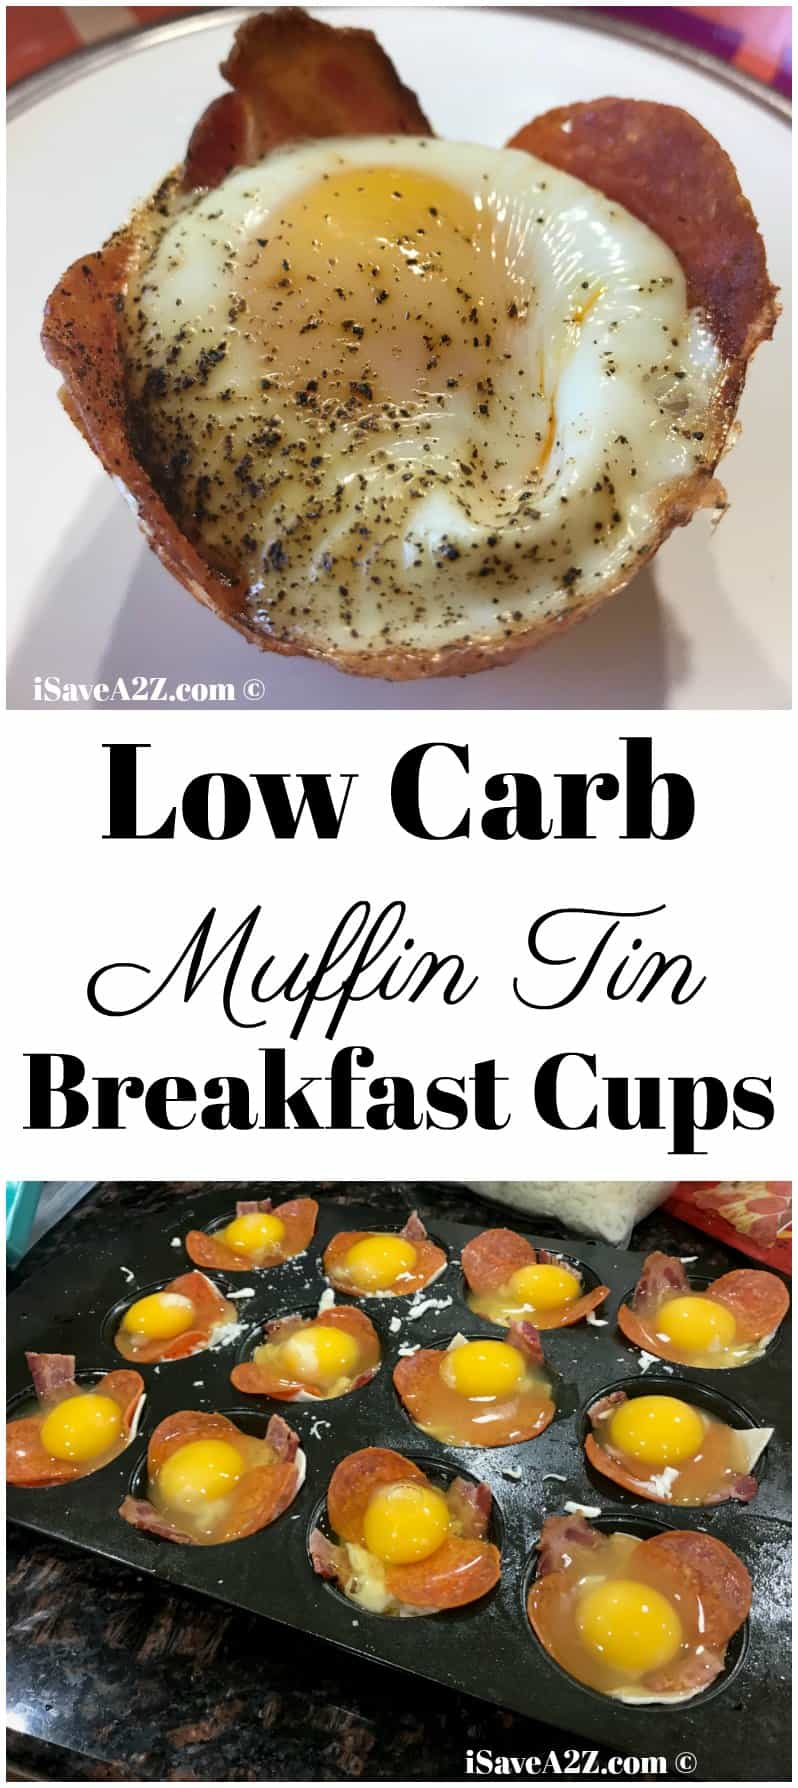 Low Carb Breakfast Cups Made in a Muffin Tin